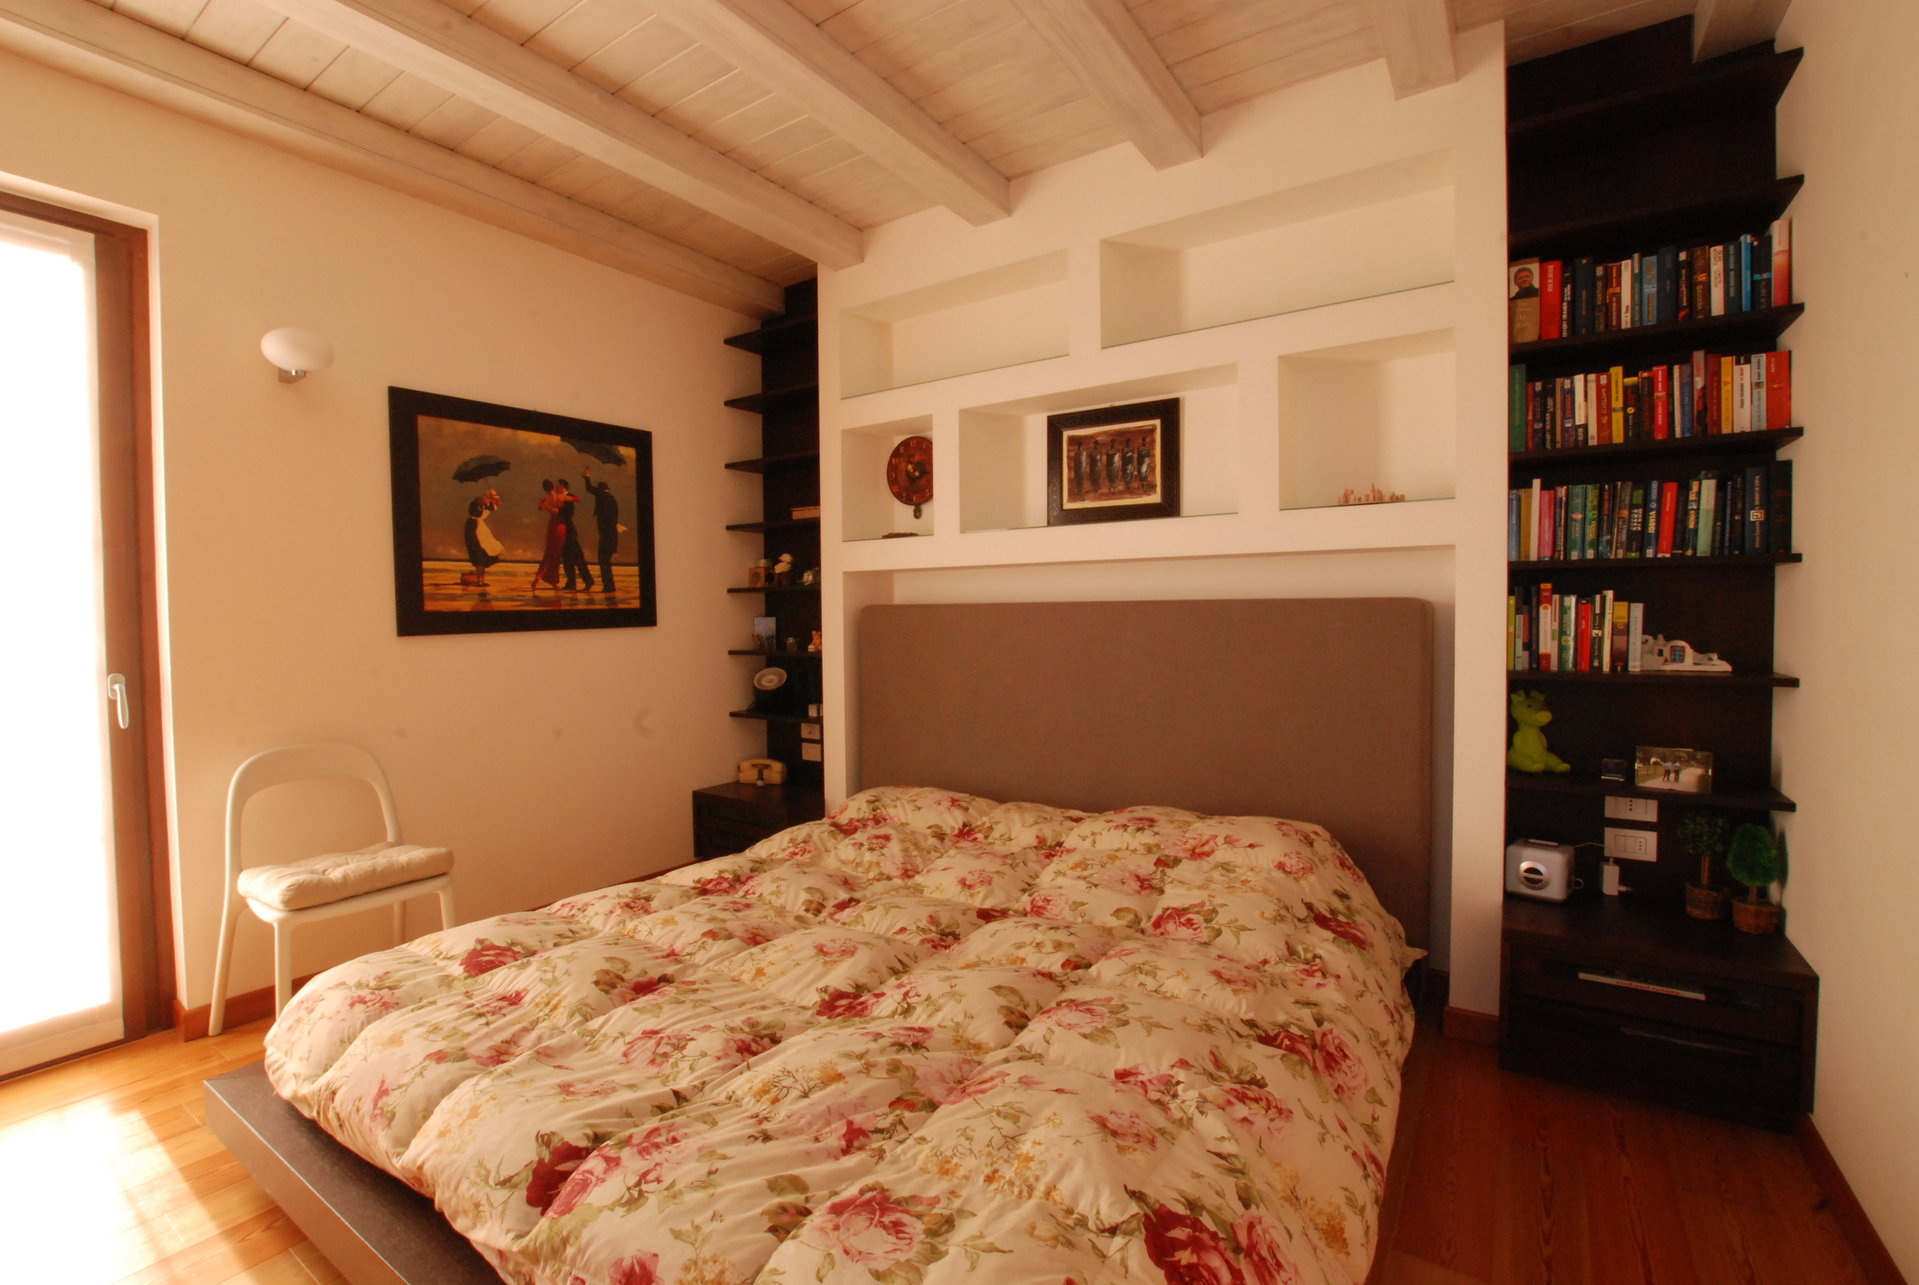 Renovated rustic house for sale in Stresa - bedroom